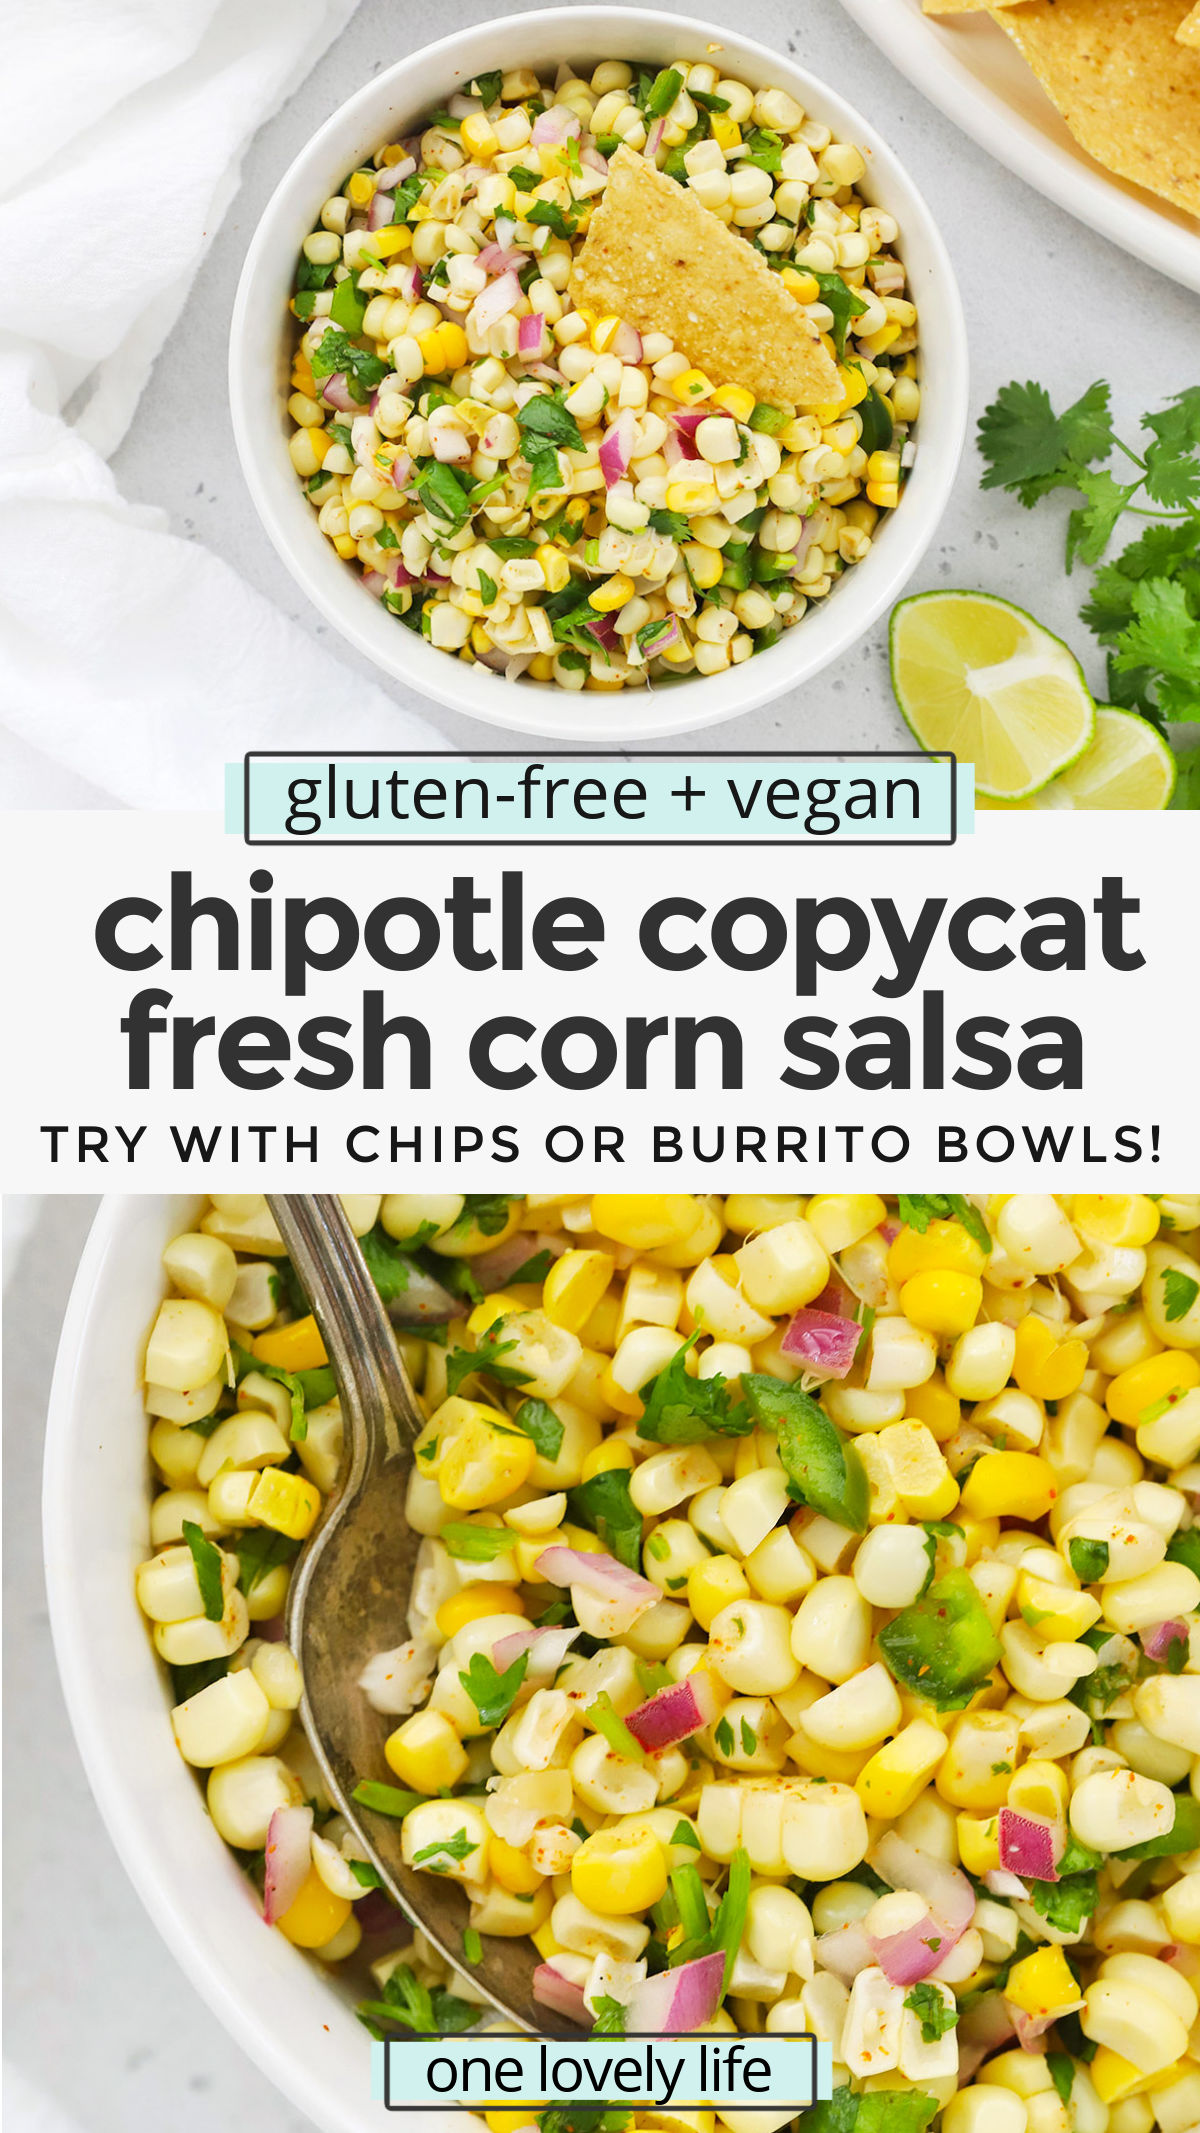 Better-Than-Chipotle Corn Salsa - Our easy fresh corn salsa recipe is incredible with chips, burrito bowls tacos, and so much more! // Chipotle Copycat Corn Salsa // Chipotle Corn Salsa Recipe // Summer Corn Salsa // Best Corn Salsa REcipe // Corn Recipes // Burrito Bowls // Homemade Salsa #salsa #corn #cornsalsa #burritobowls #summerrecipe #taconight